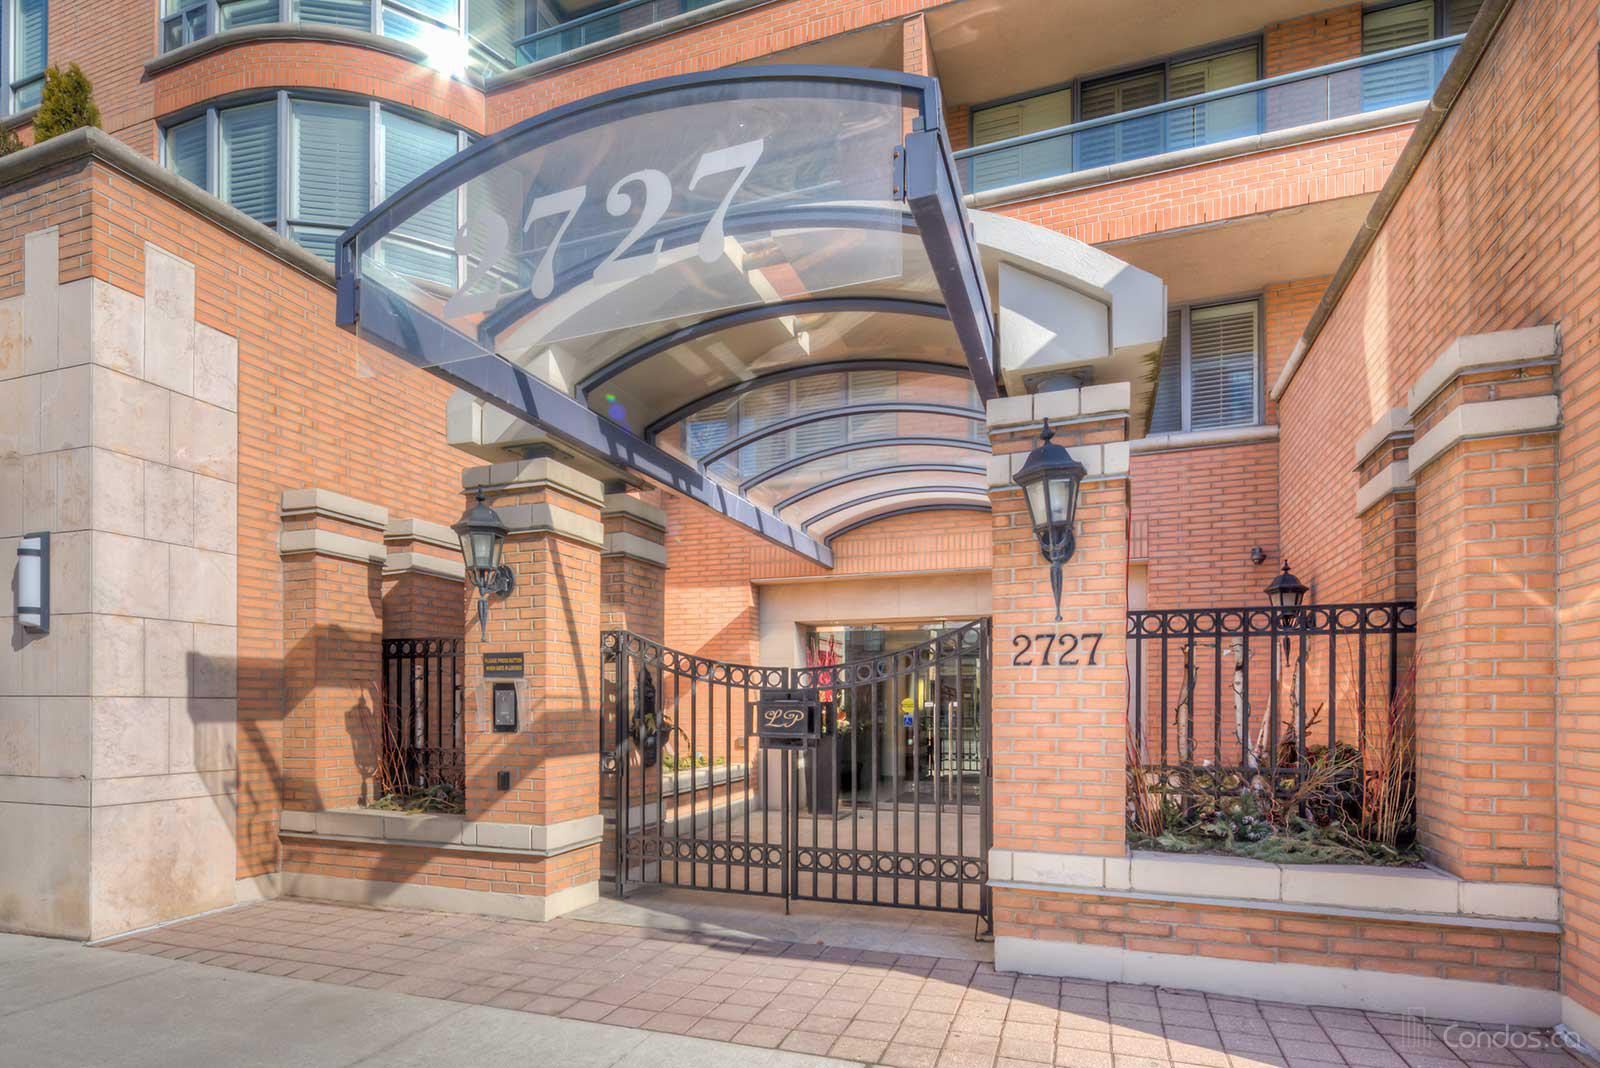 The Lawrence Park Condominiums at 2727 Yonge St, Toronto 0